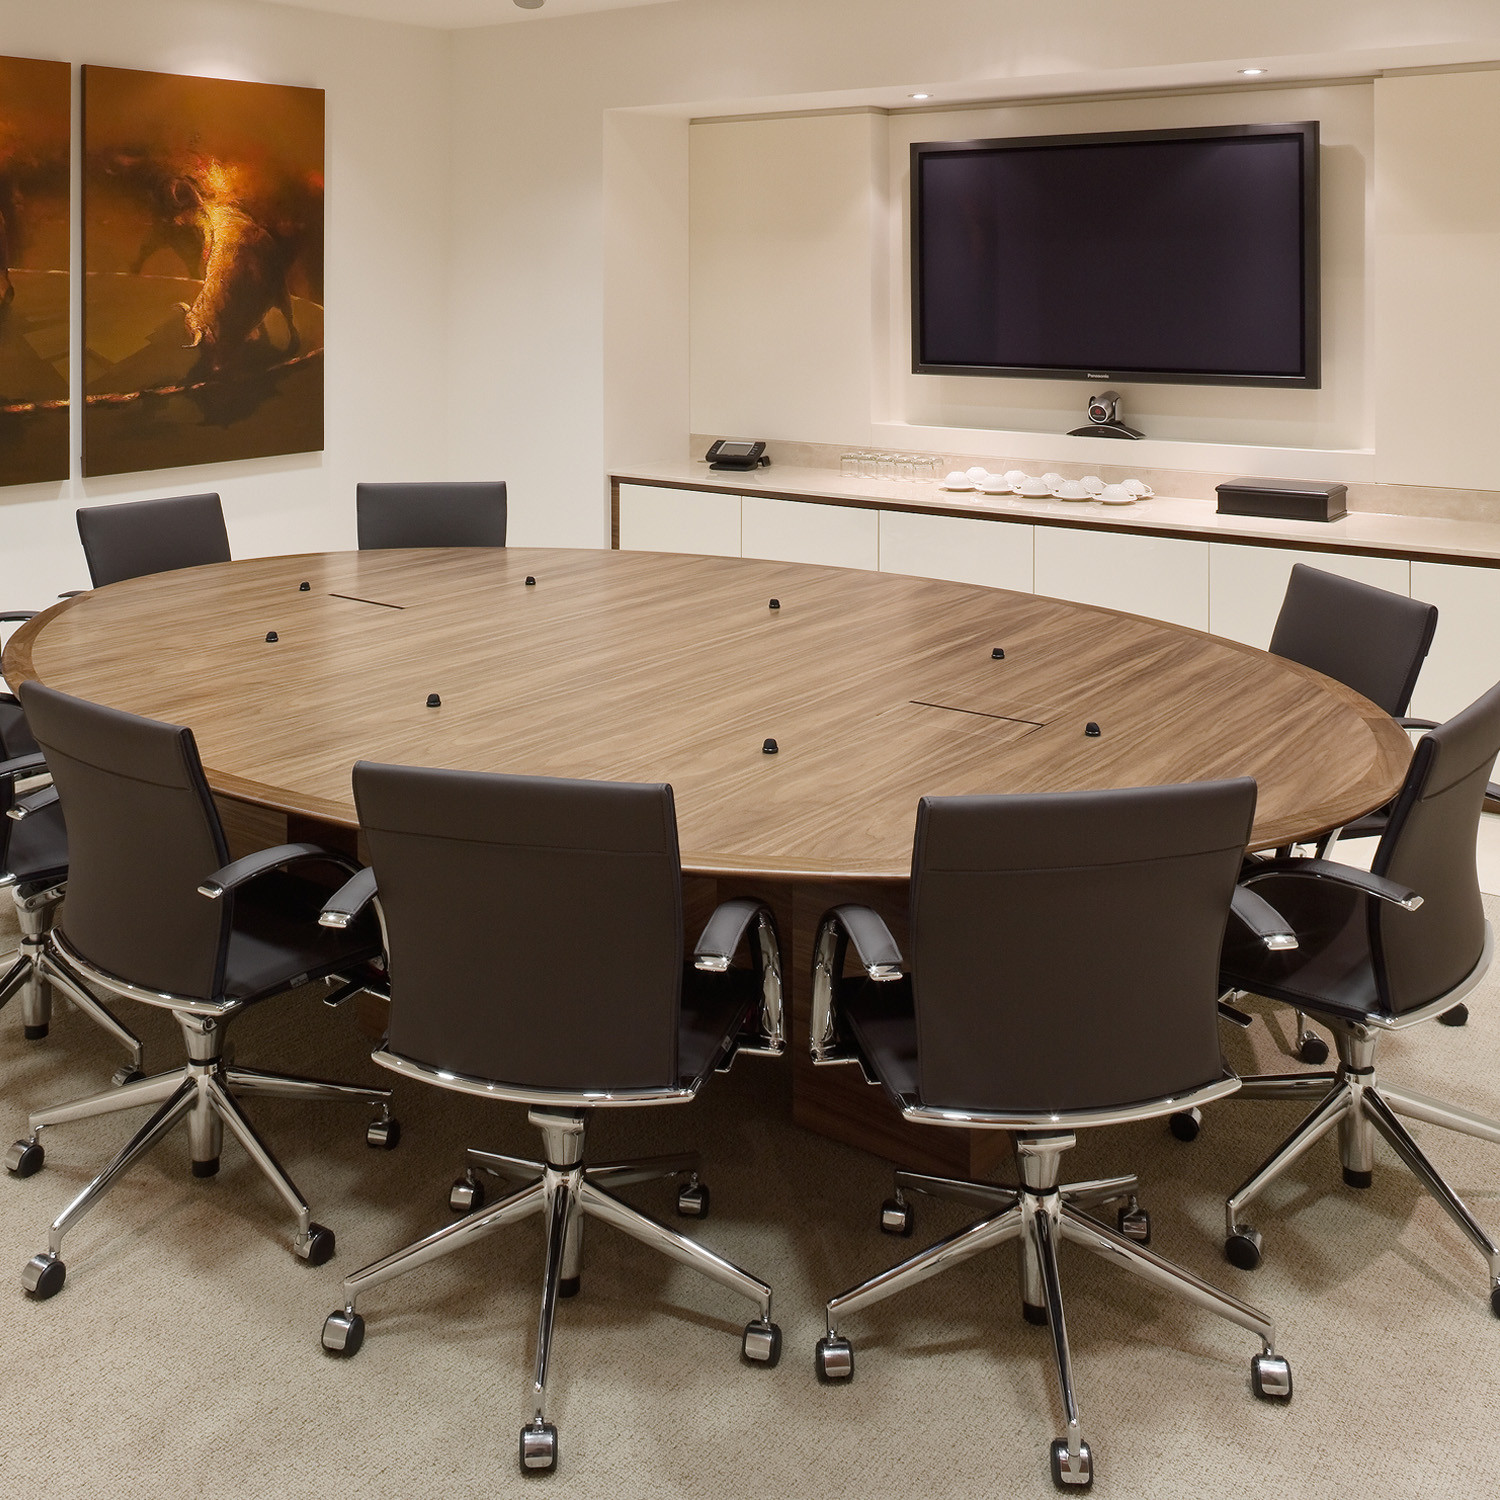 Bespoke Conference Tables Meeting Room Tables Apr S